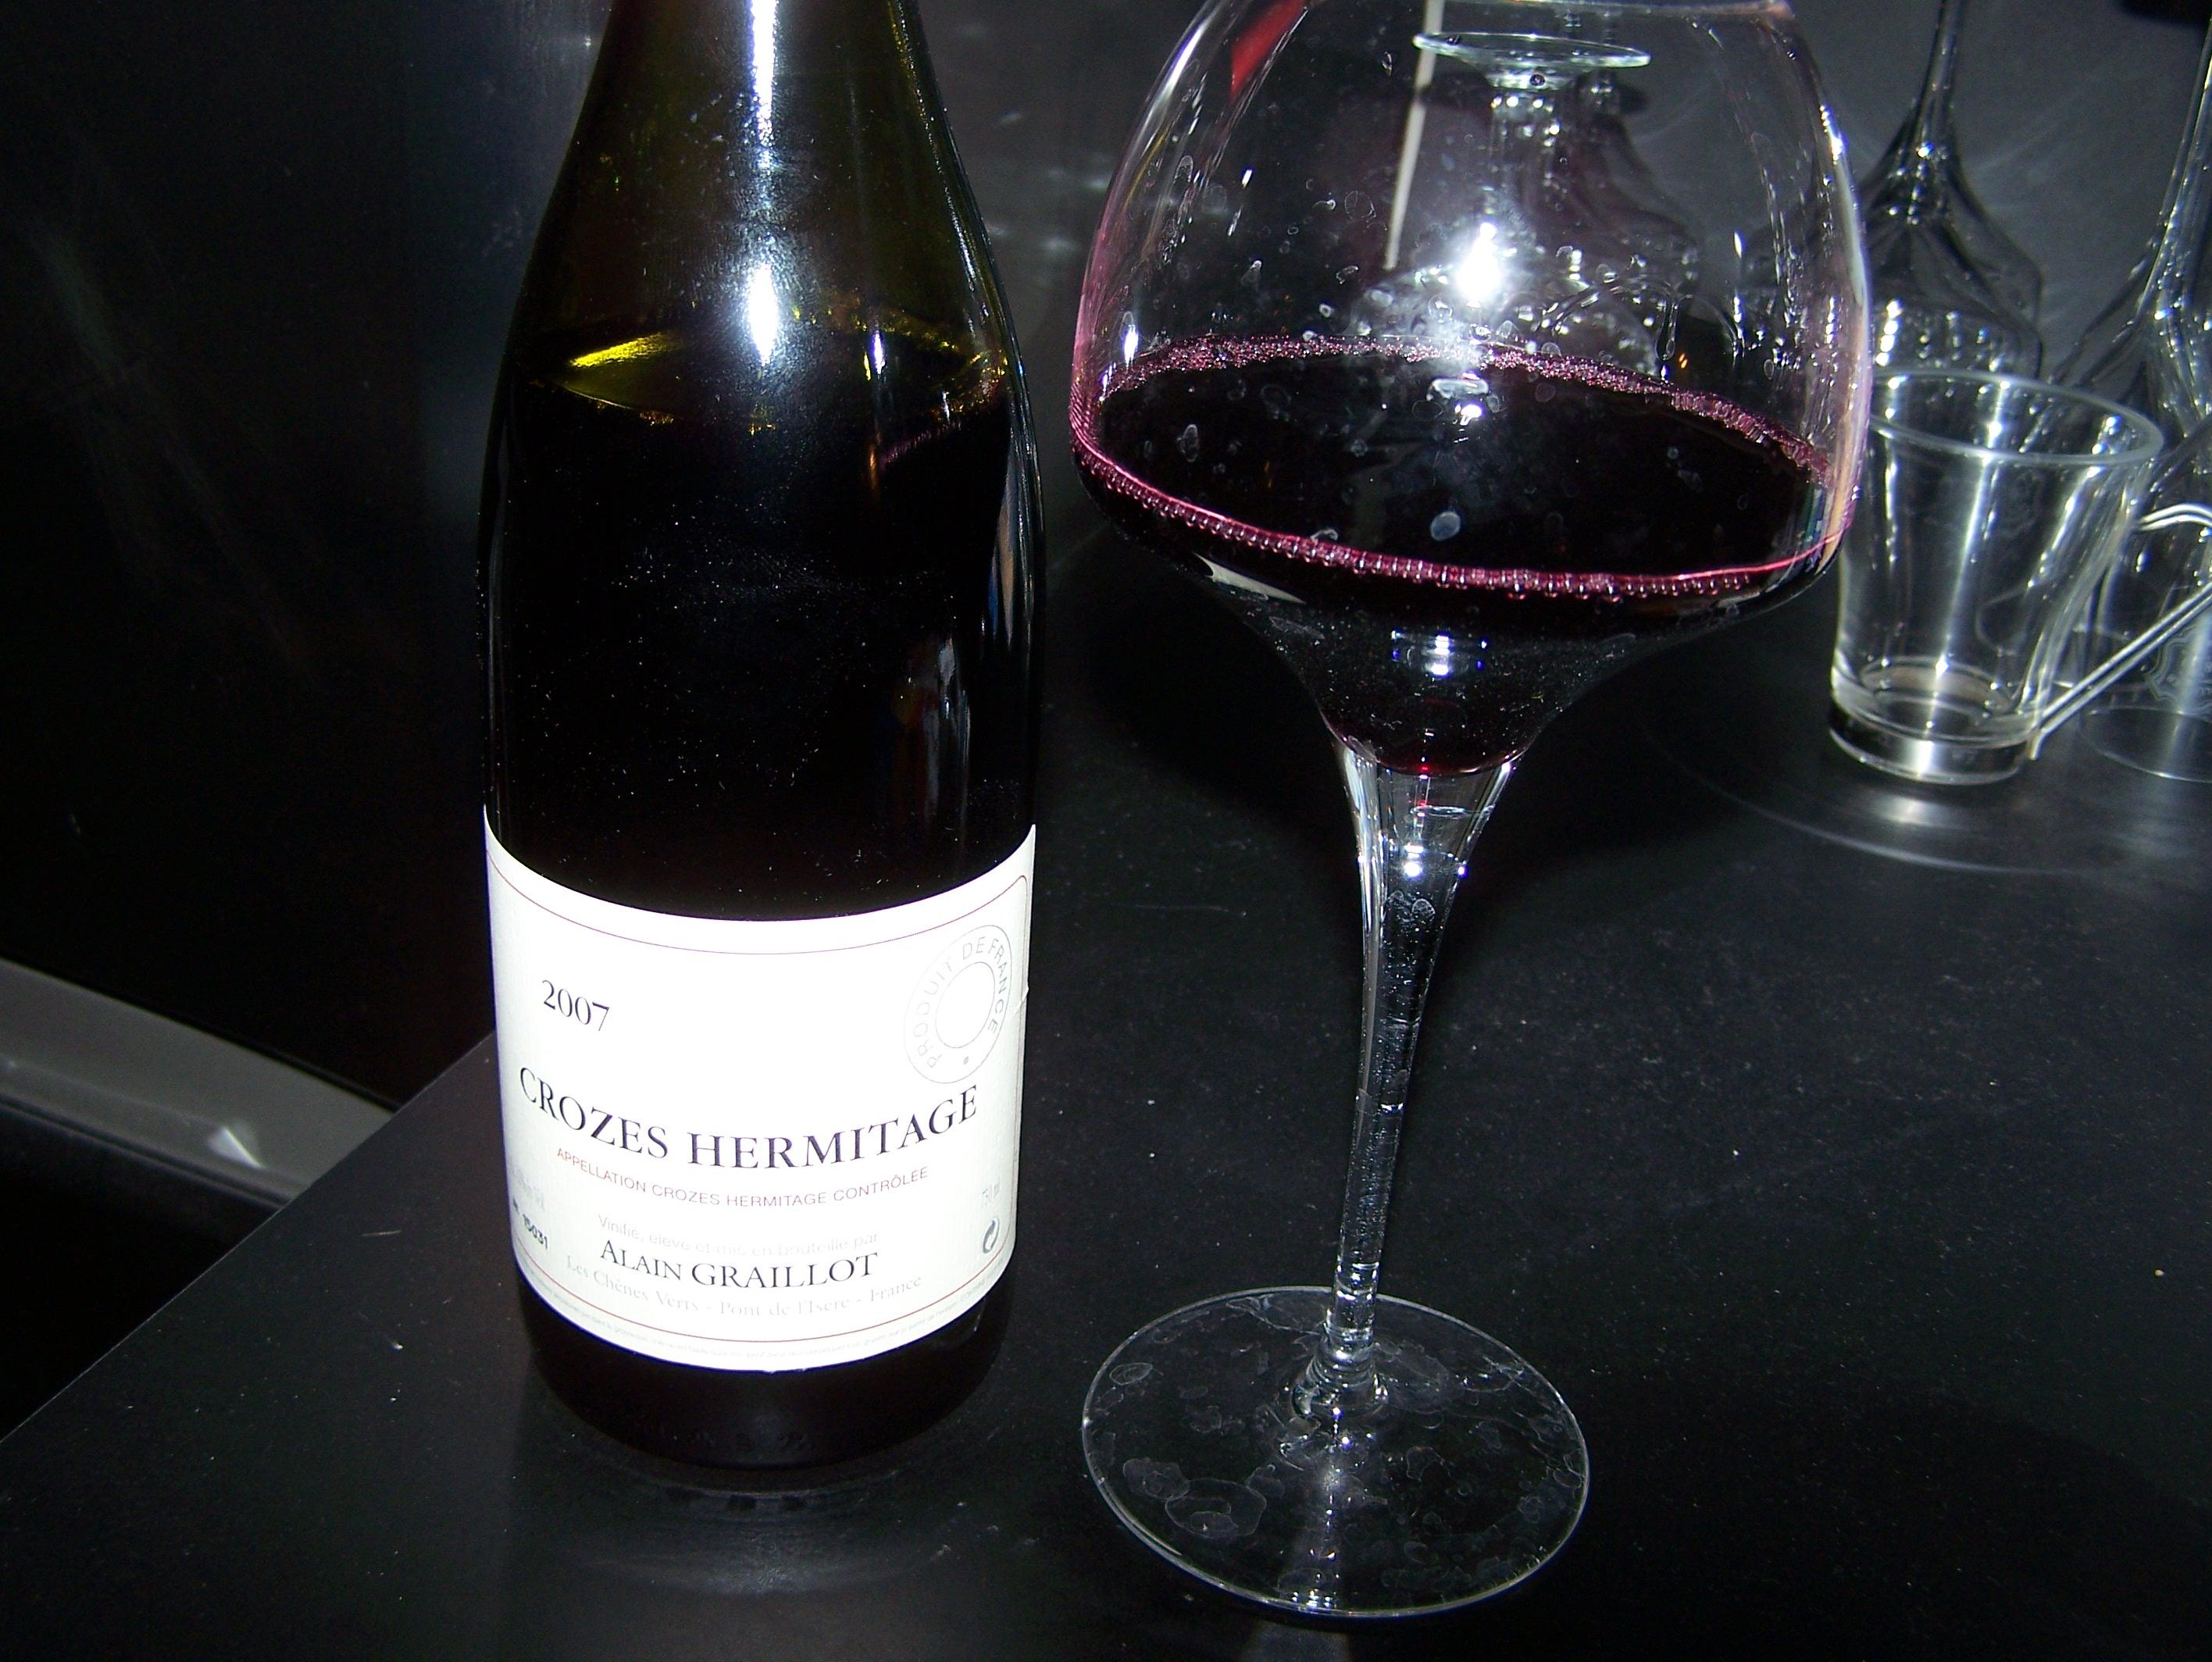 Crozes Hermitage Rouge 2007 Alain Graillot